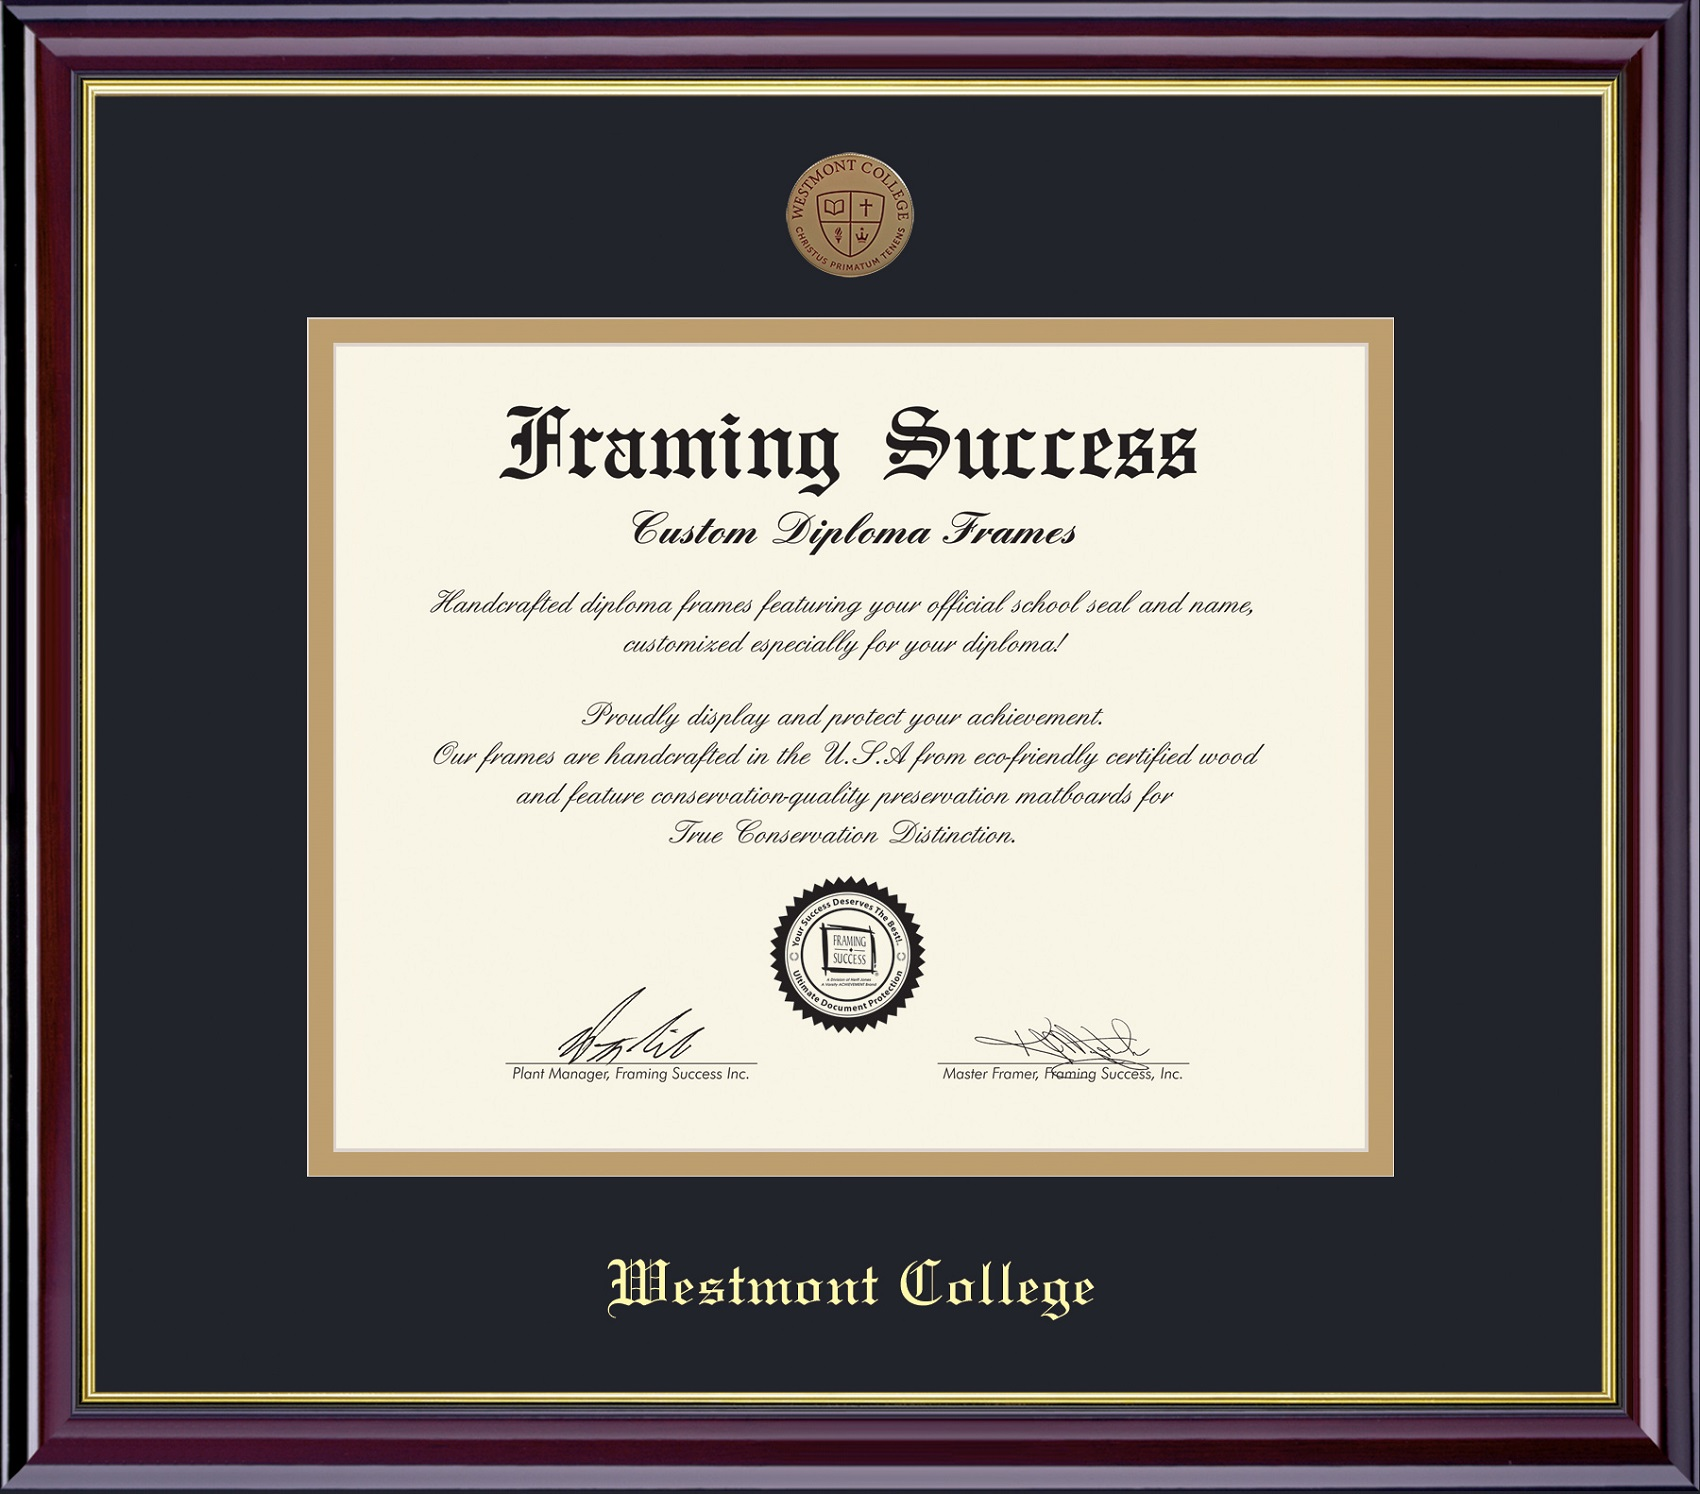 Alternative Image for the Framing Success Diploma Frames product